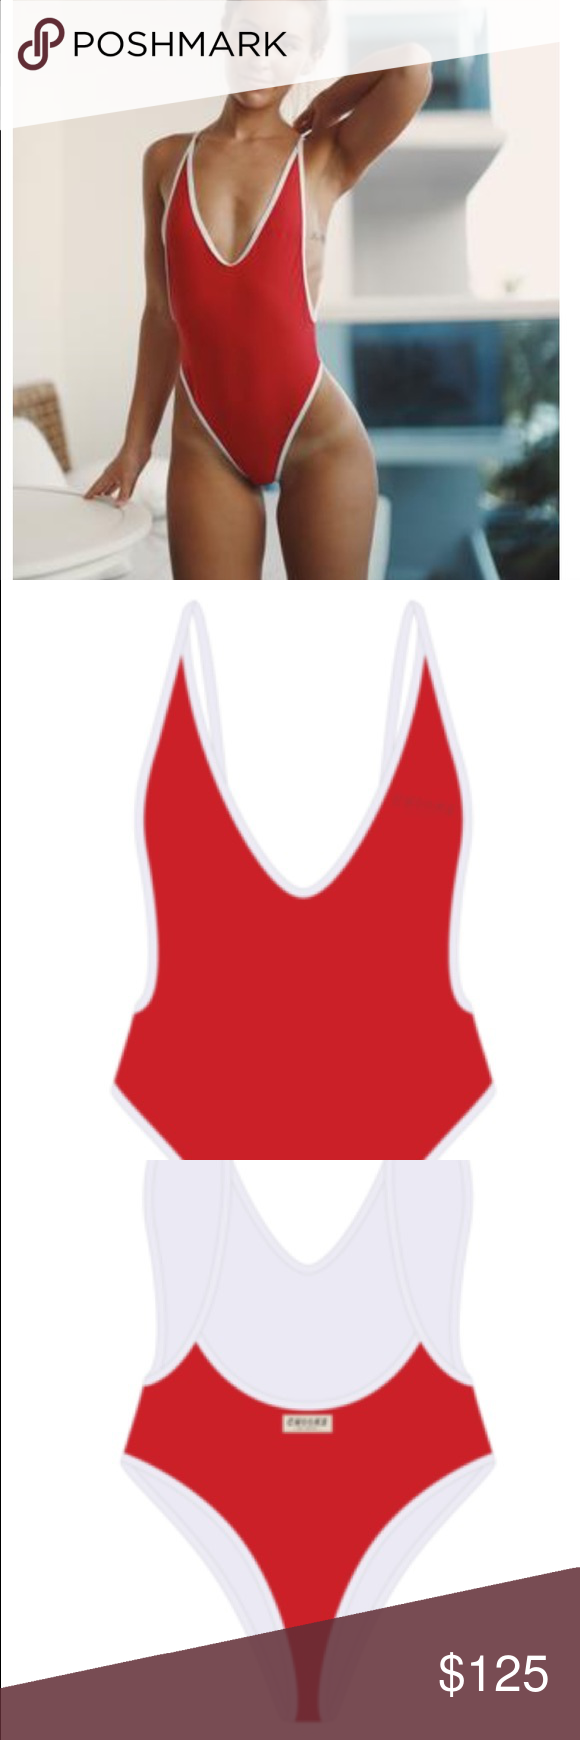 773f108dbf Sold out boutine la bay red retro one piece! Sold out! Red retro one ...